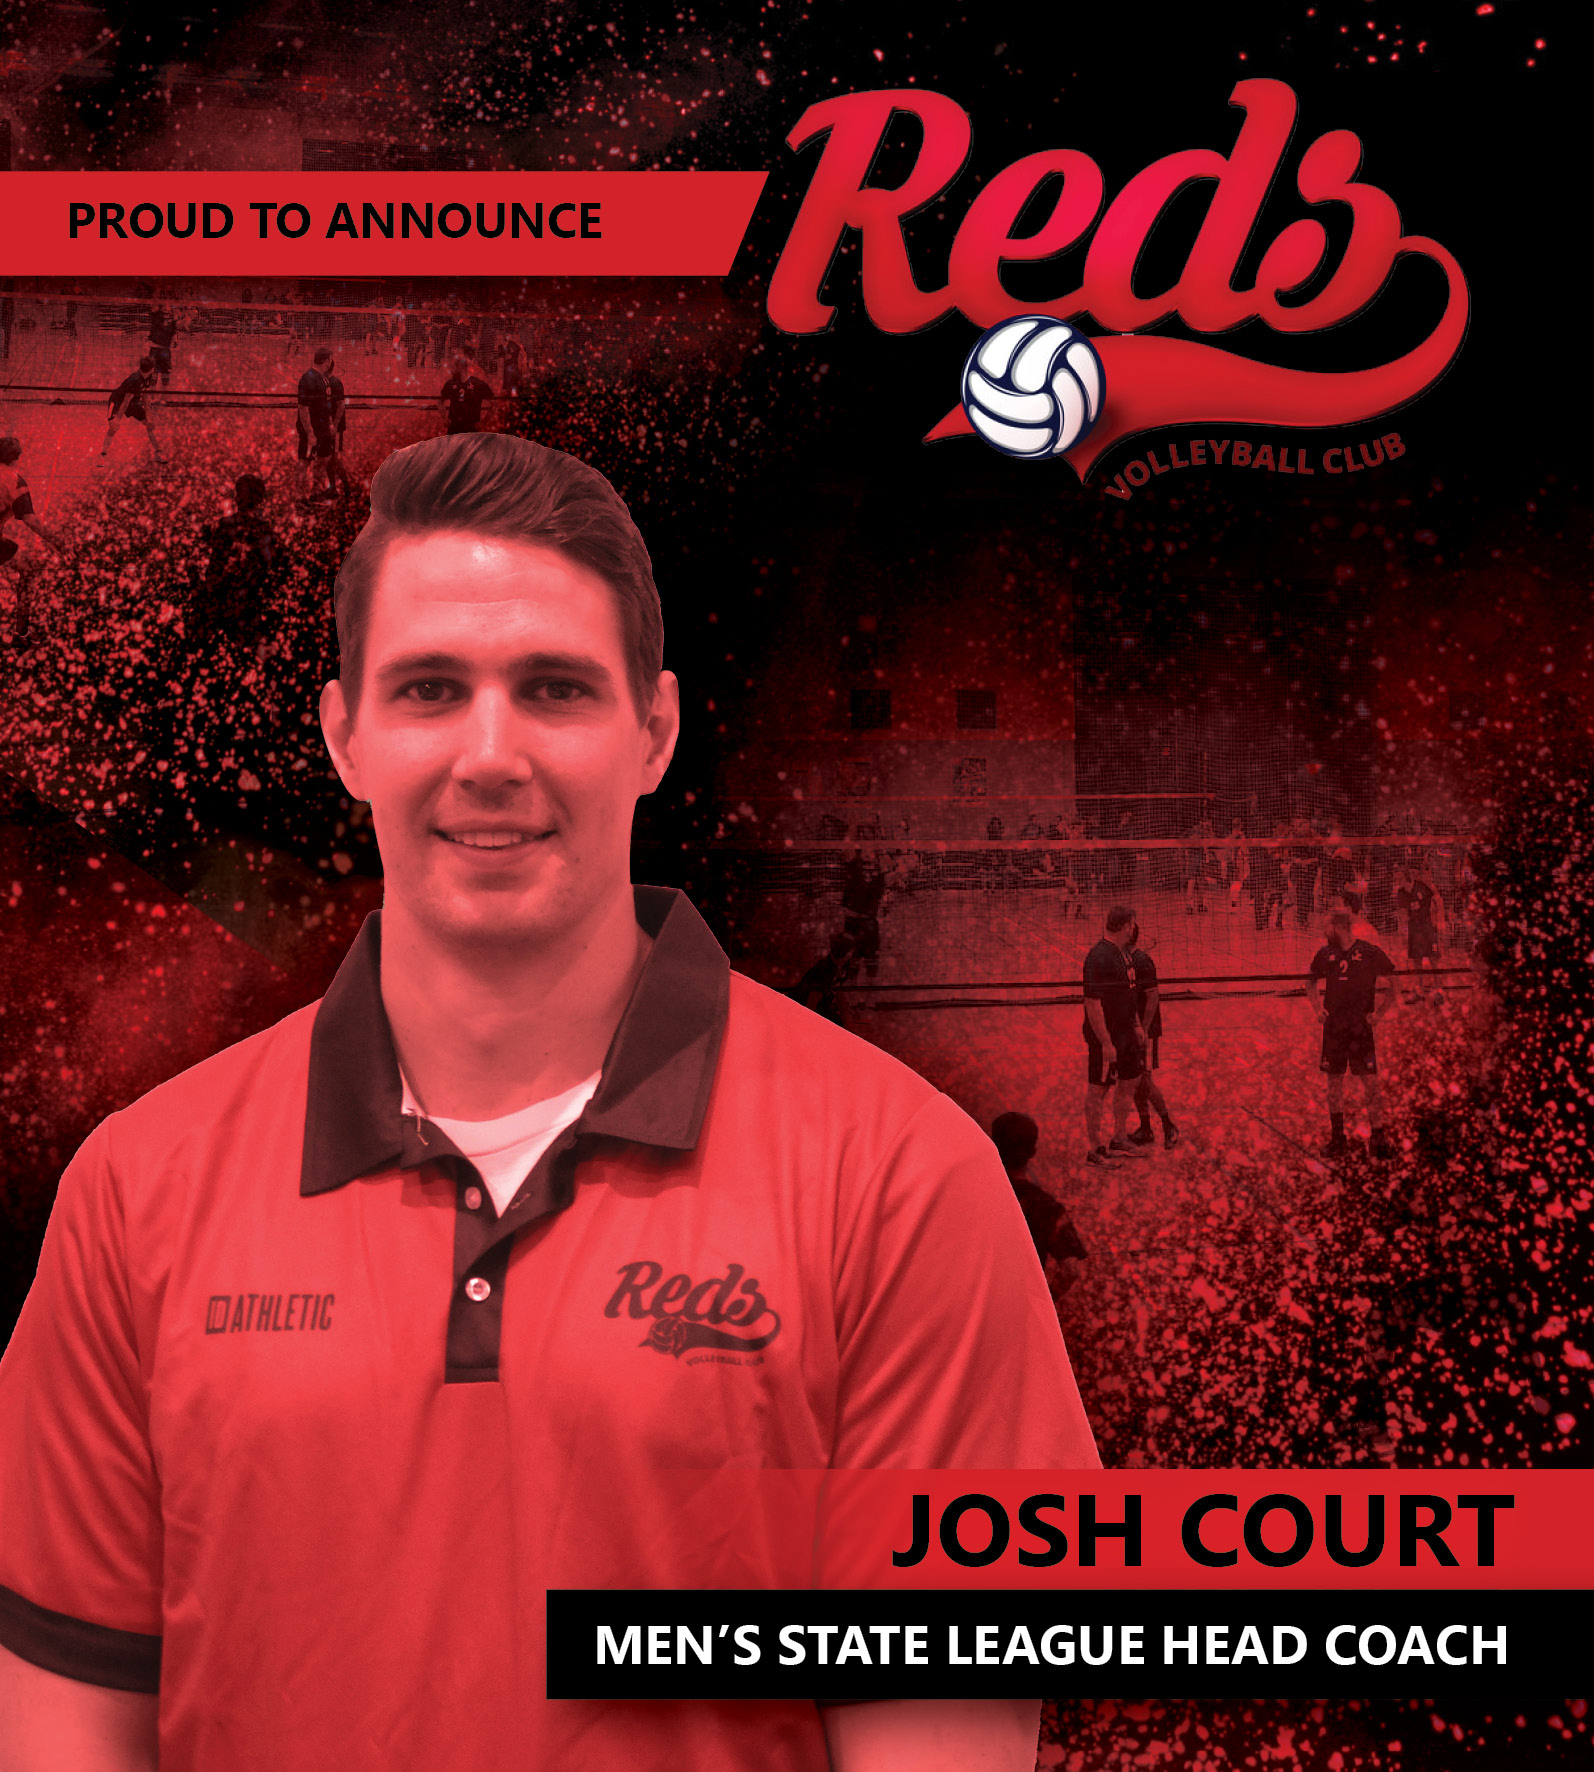 Joshua Court - Men's State League Head Coach